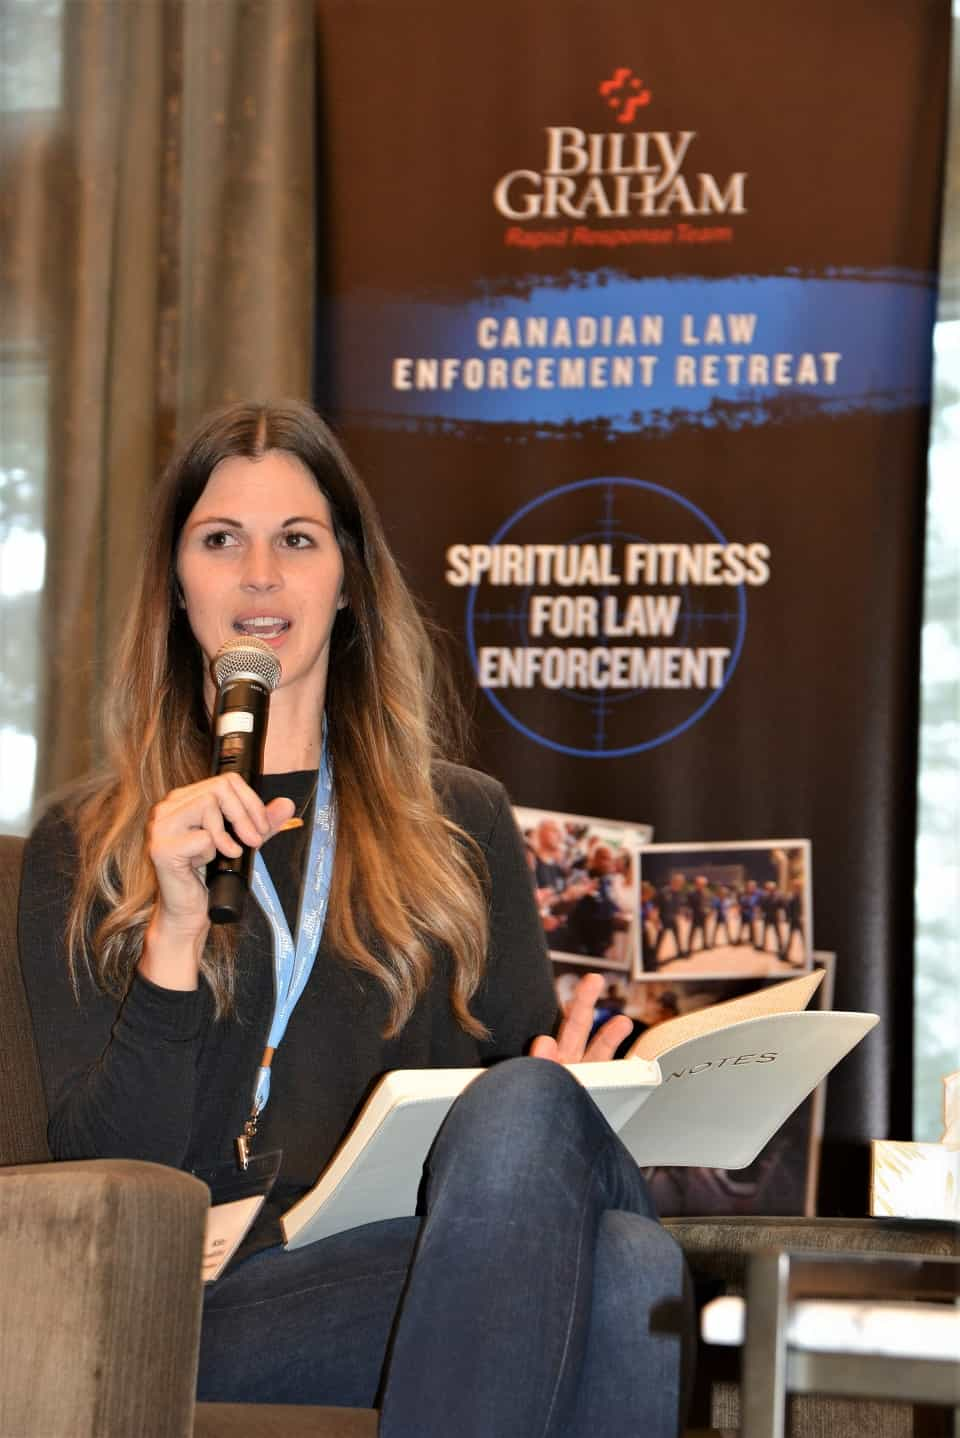 Kate Hawkins described the effects of her anxiety discorder on her marriage to husband Jamie (an RCMP officer in New Brunswick) and their family life. We praise God that Kate found medication which helped her tremendously.